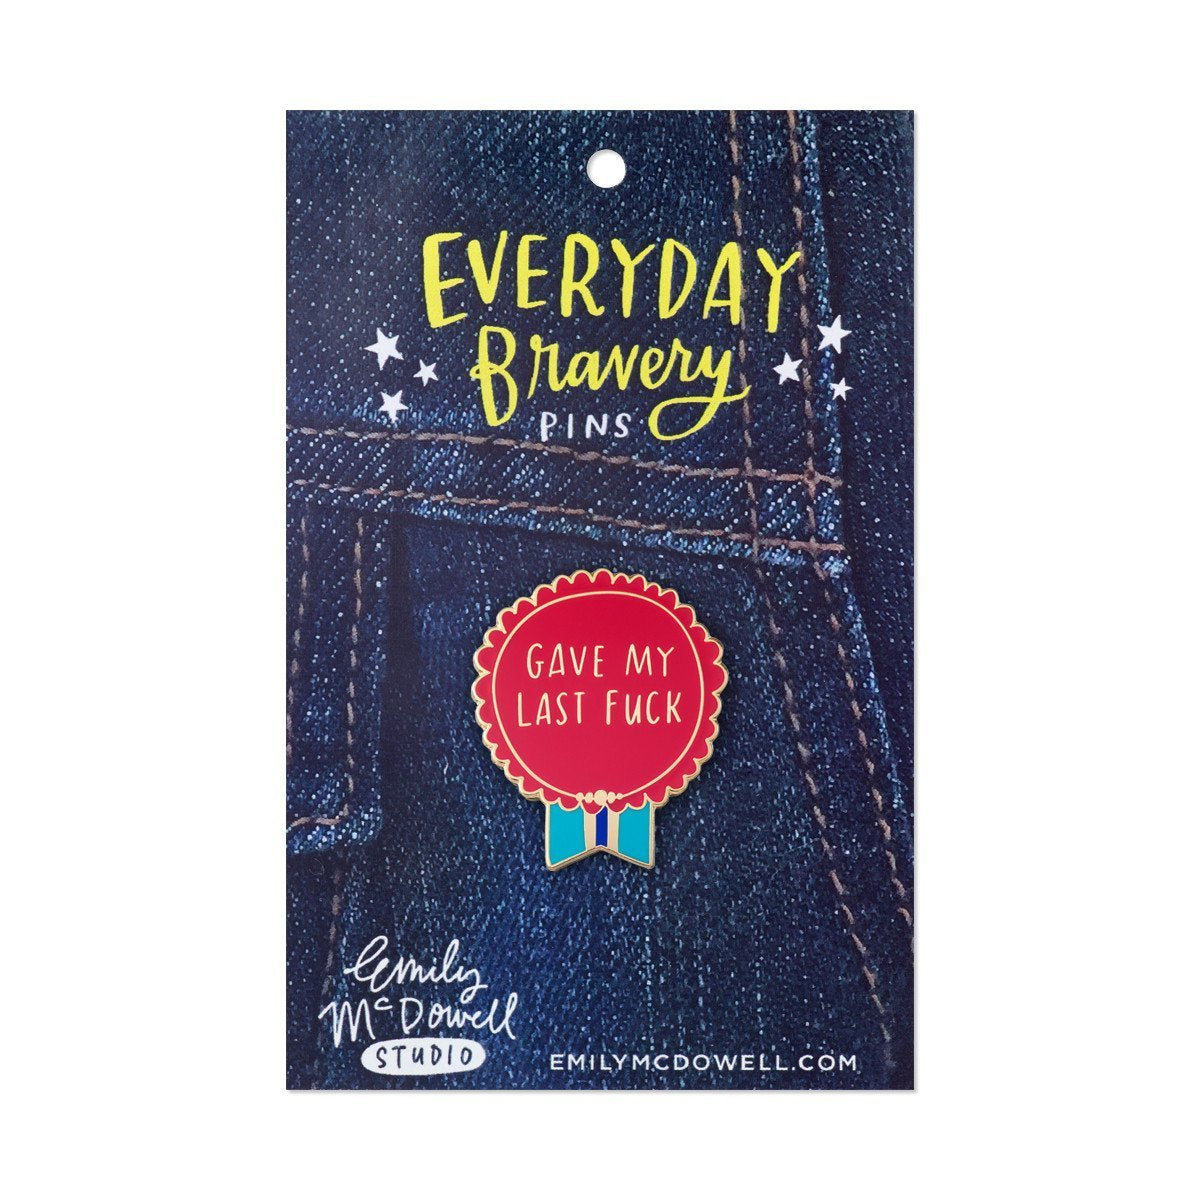 Emily McDowell Everyday Bravery Pins: Gave My Last Fuck